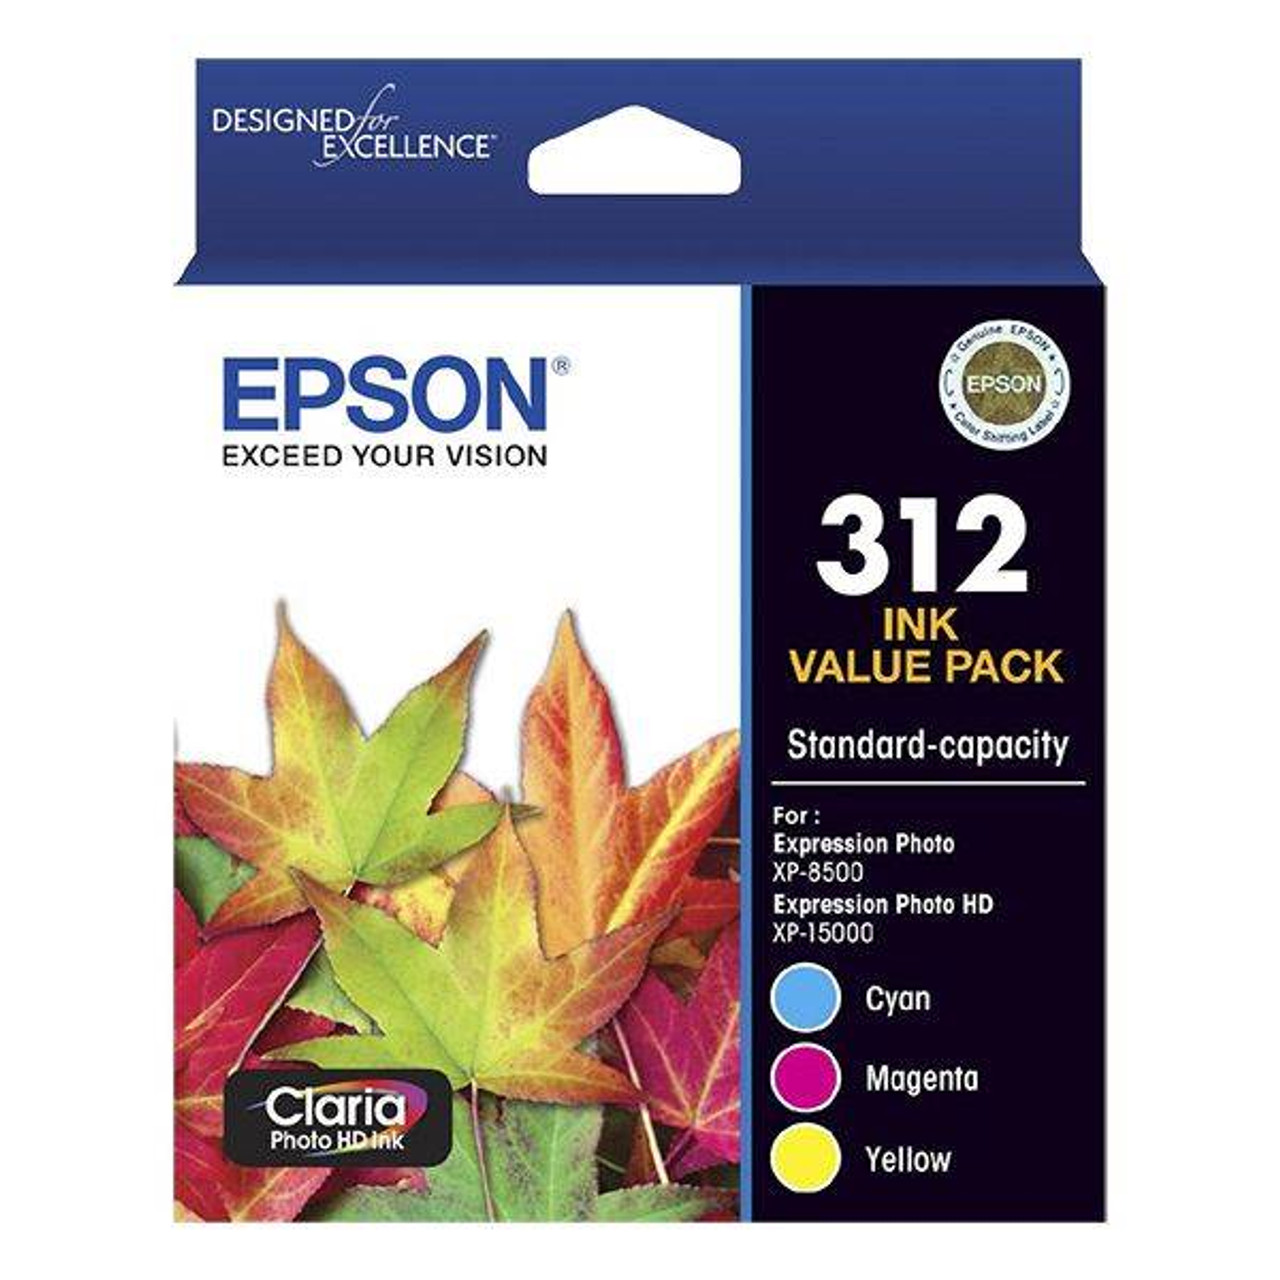 Image for Epson 312 Standard Capacity Claria Photo HD CMY Colour Ink Cartridge Pack CX Computer Superstore